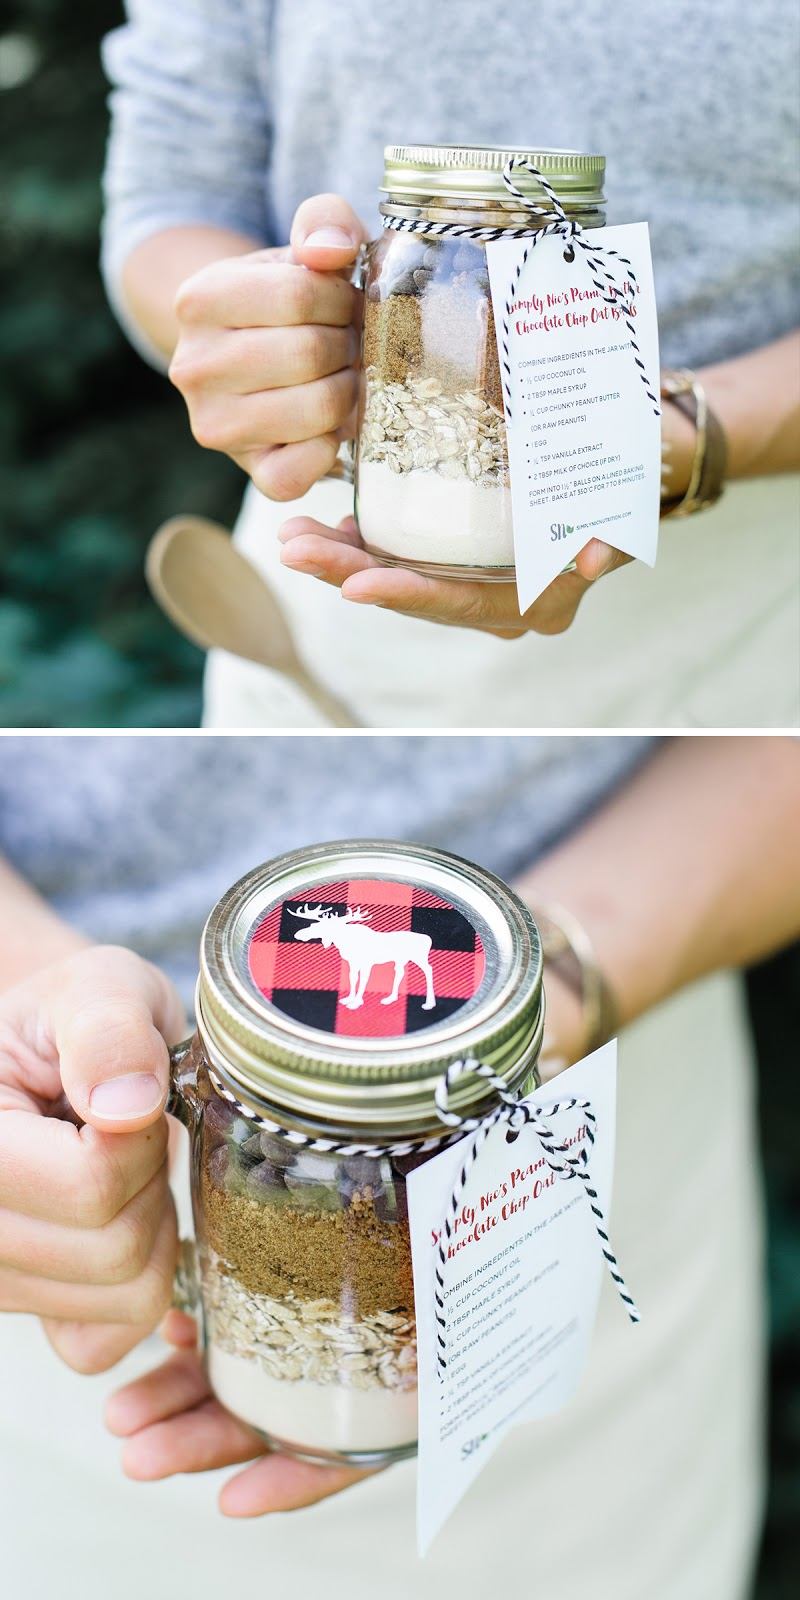 homemade gifts in jars | creativebag.com